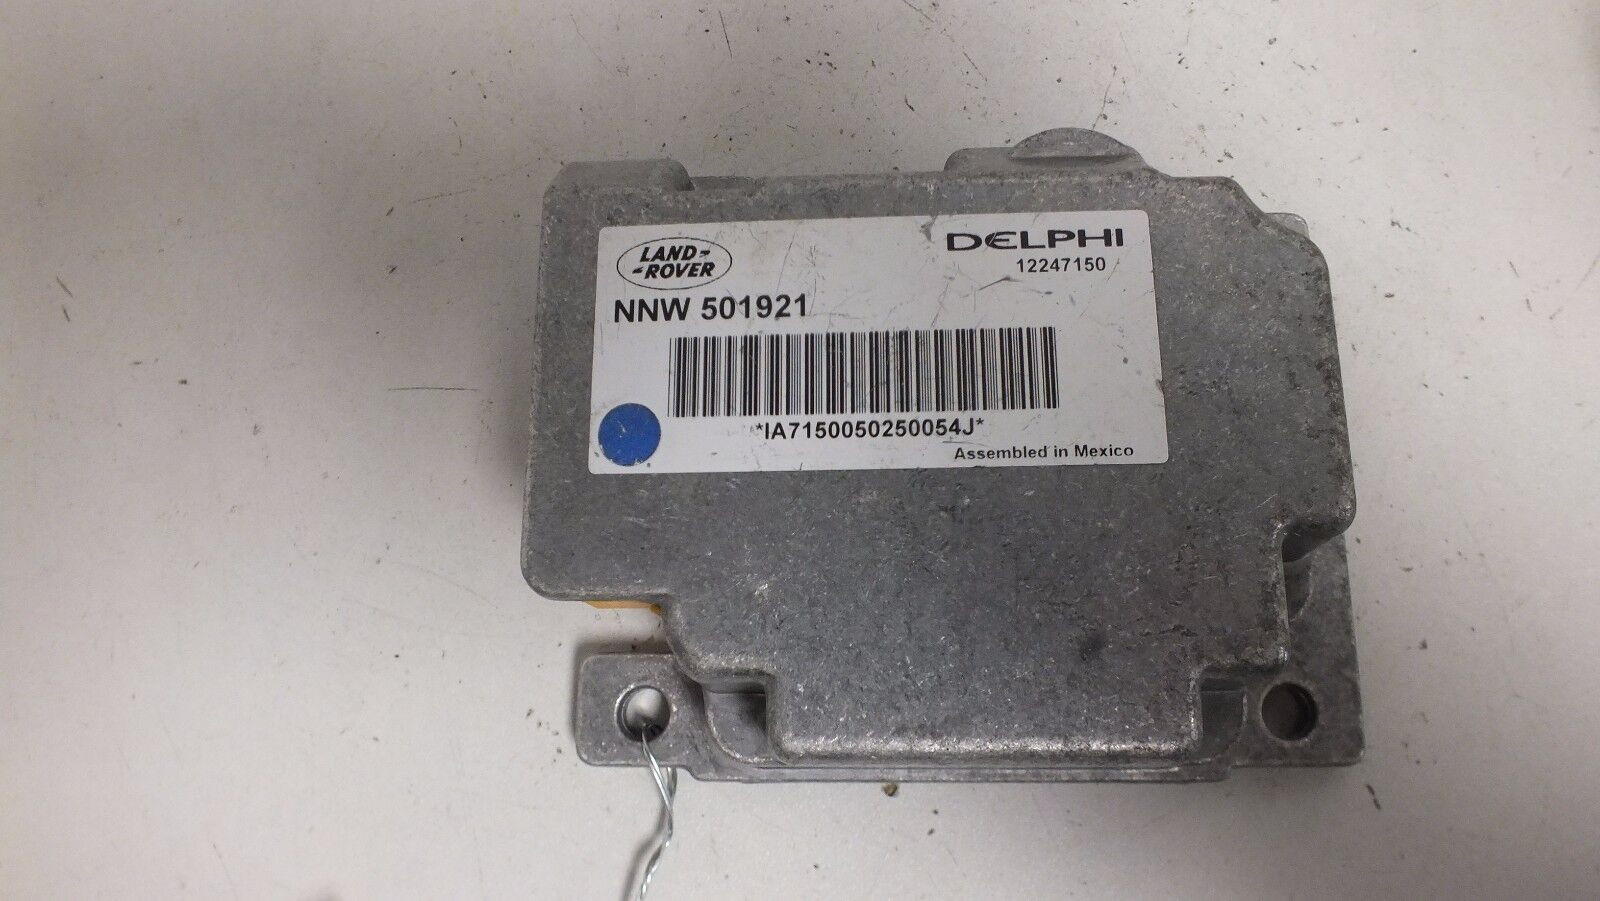 Used 2006 Land Rover Range Sport Computers Chips Cruise Fuse Box Control And Related Parts For Sale